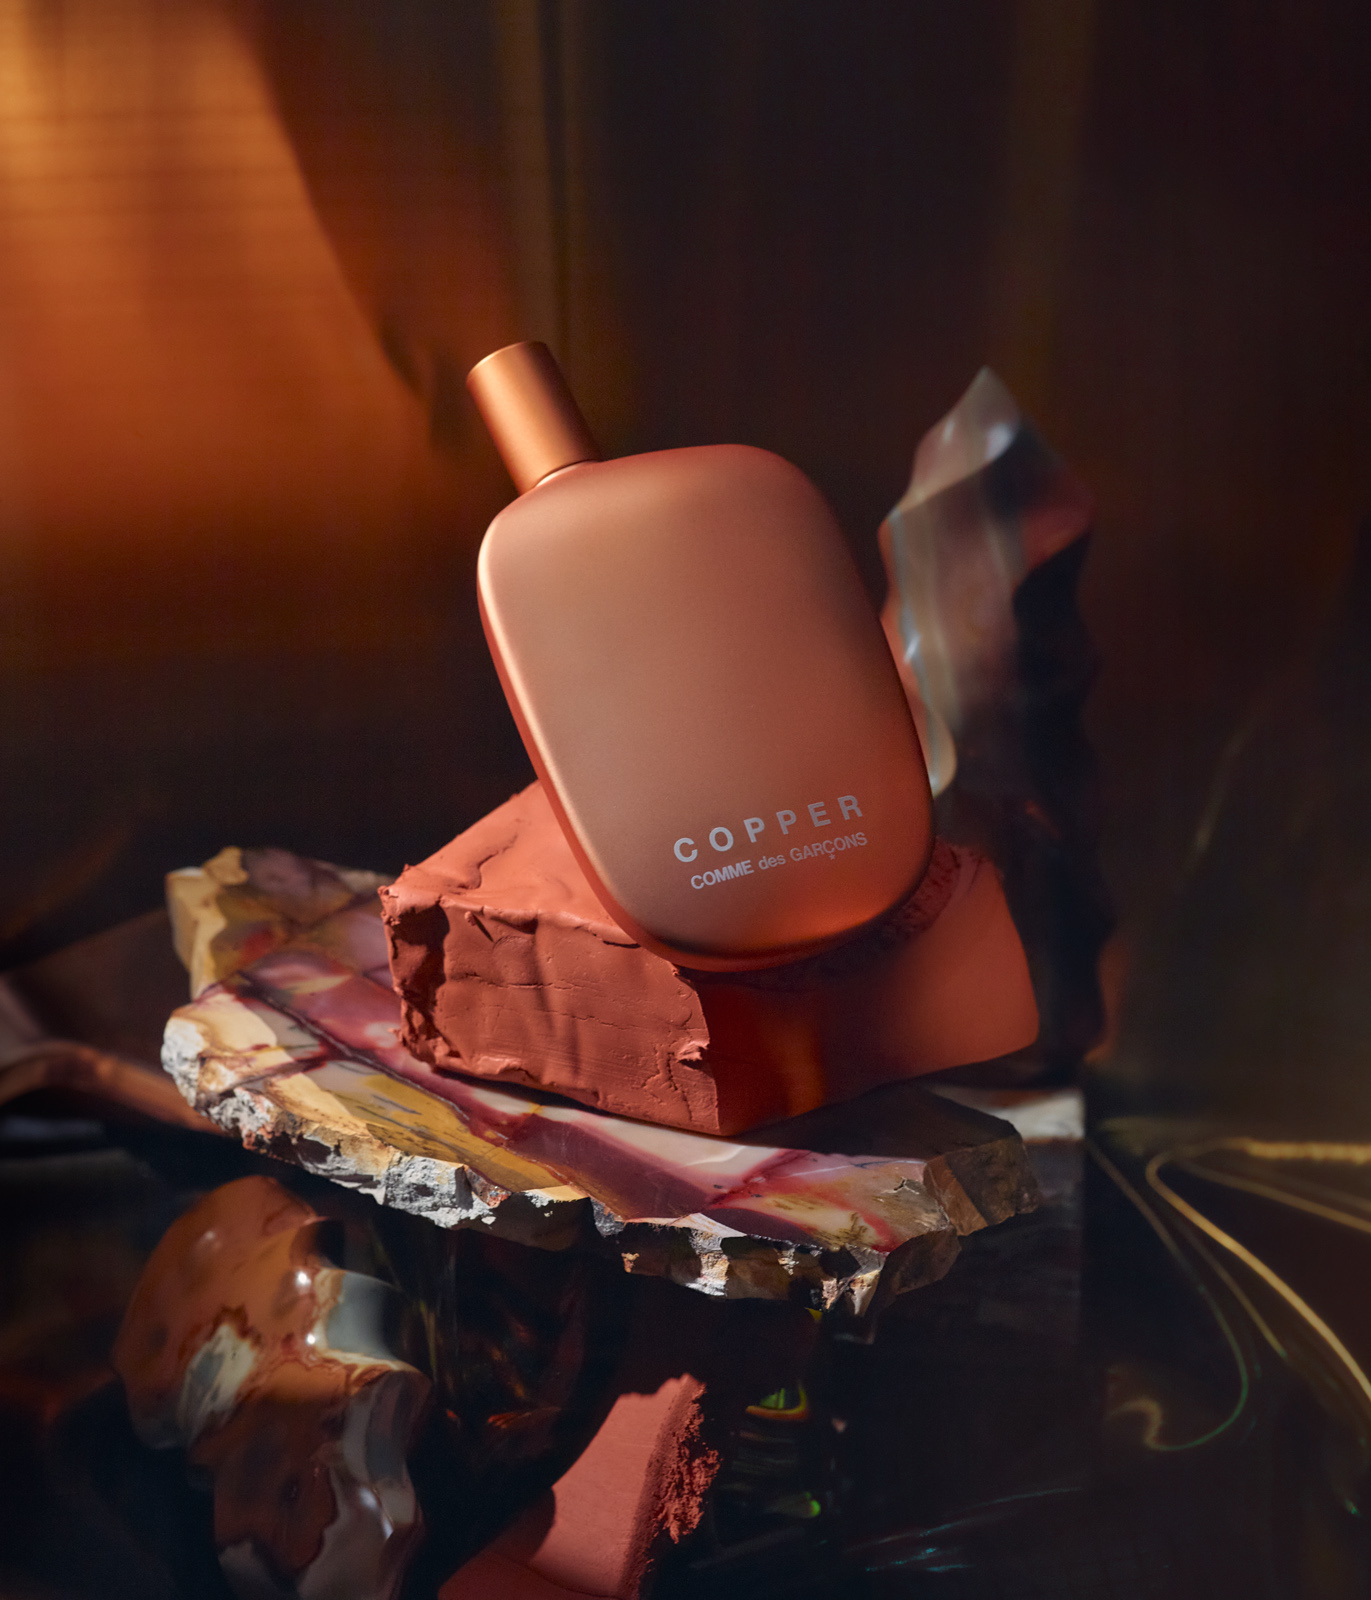 Scentury_CdG_Copper